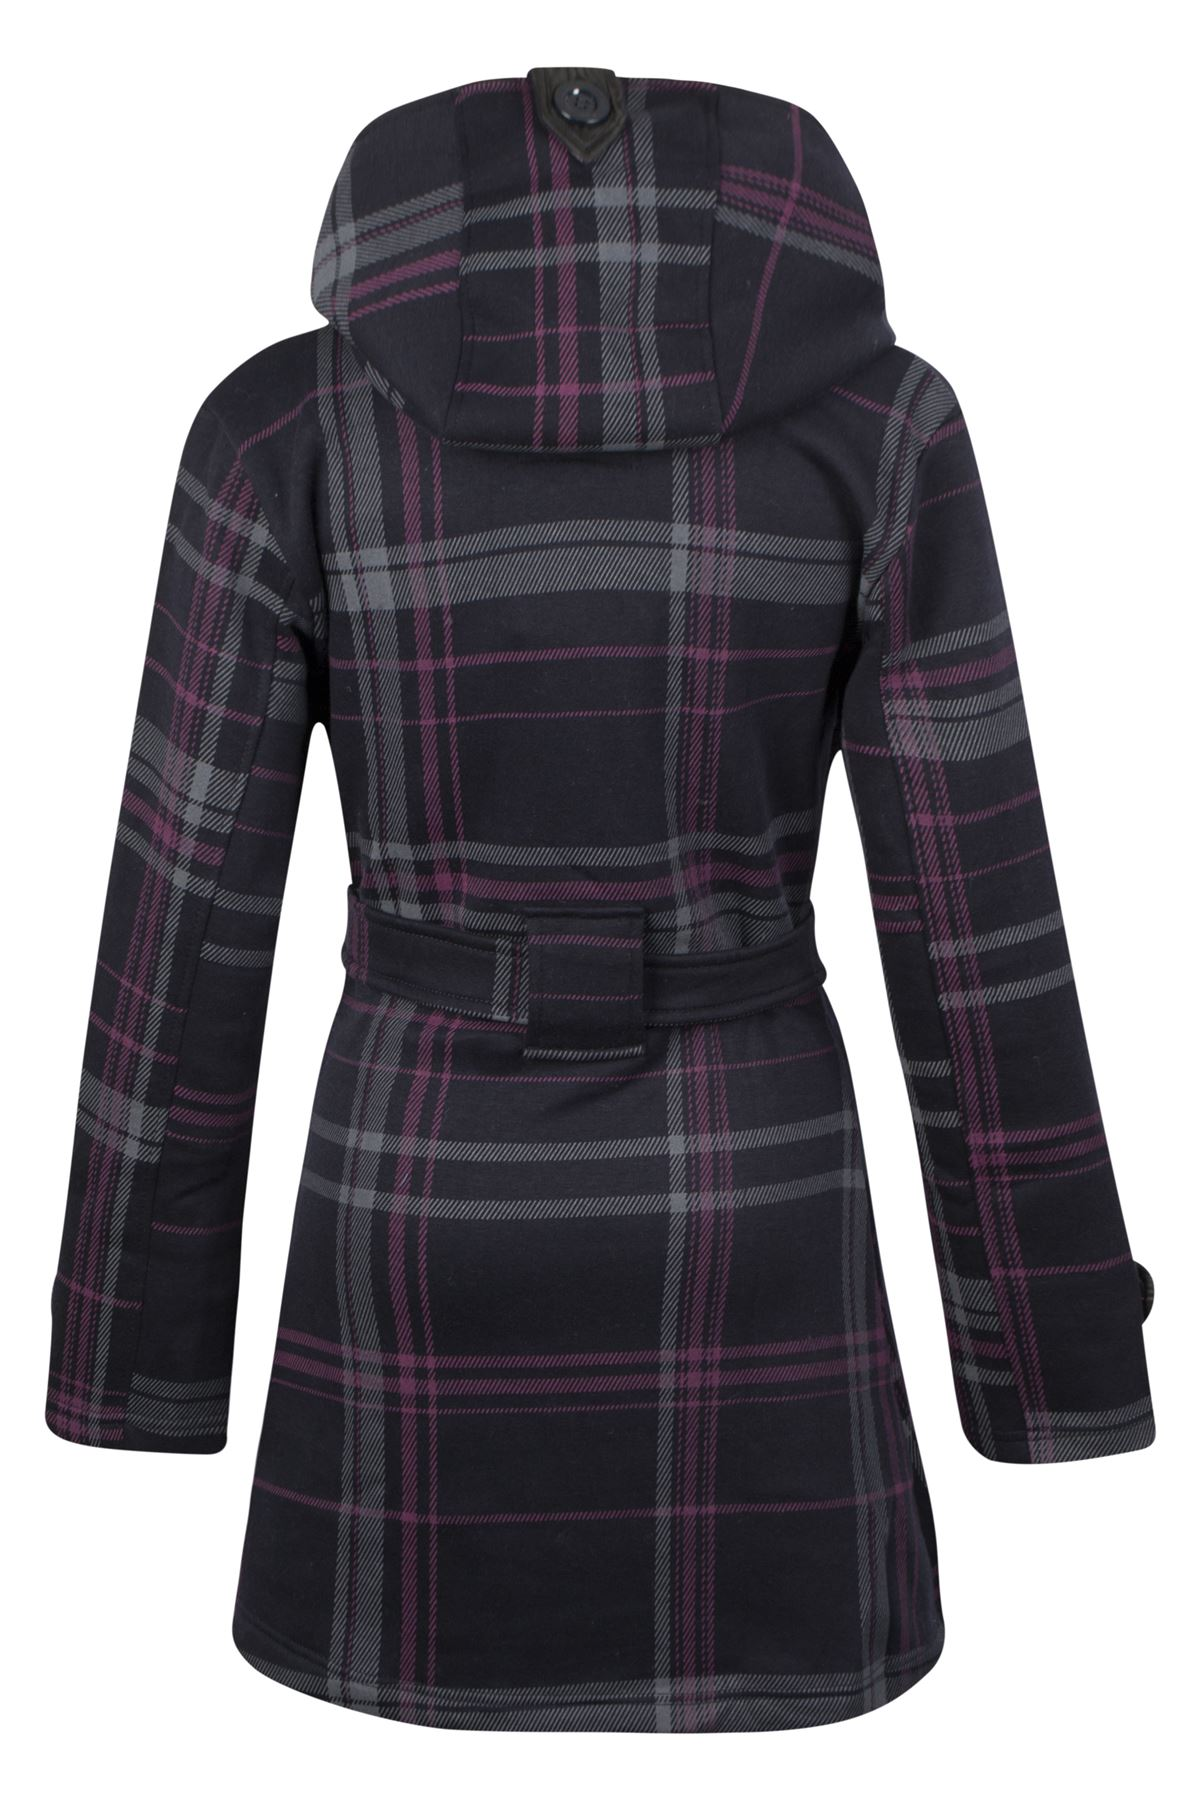 New-Womens-Button-Check-Hood-Coat-Hooded-Jacket-Fleece-Belted-Ladies-Size-UK8-14